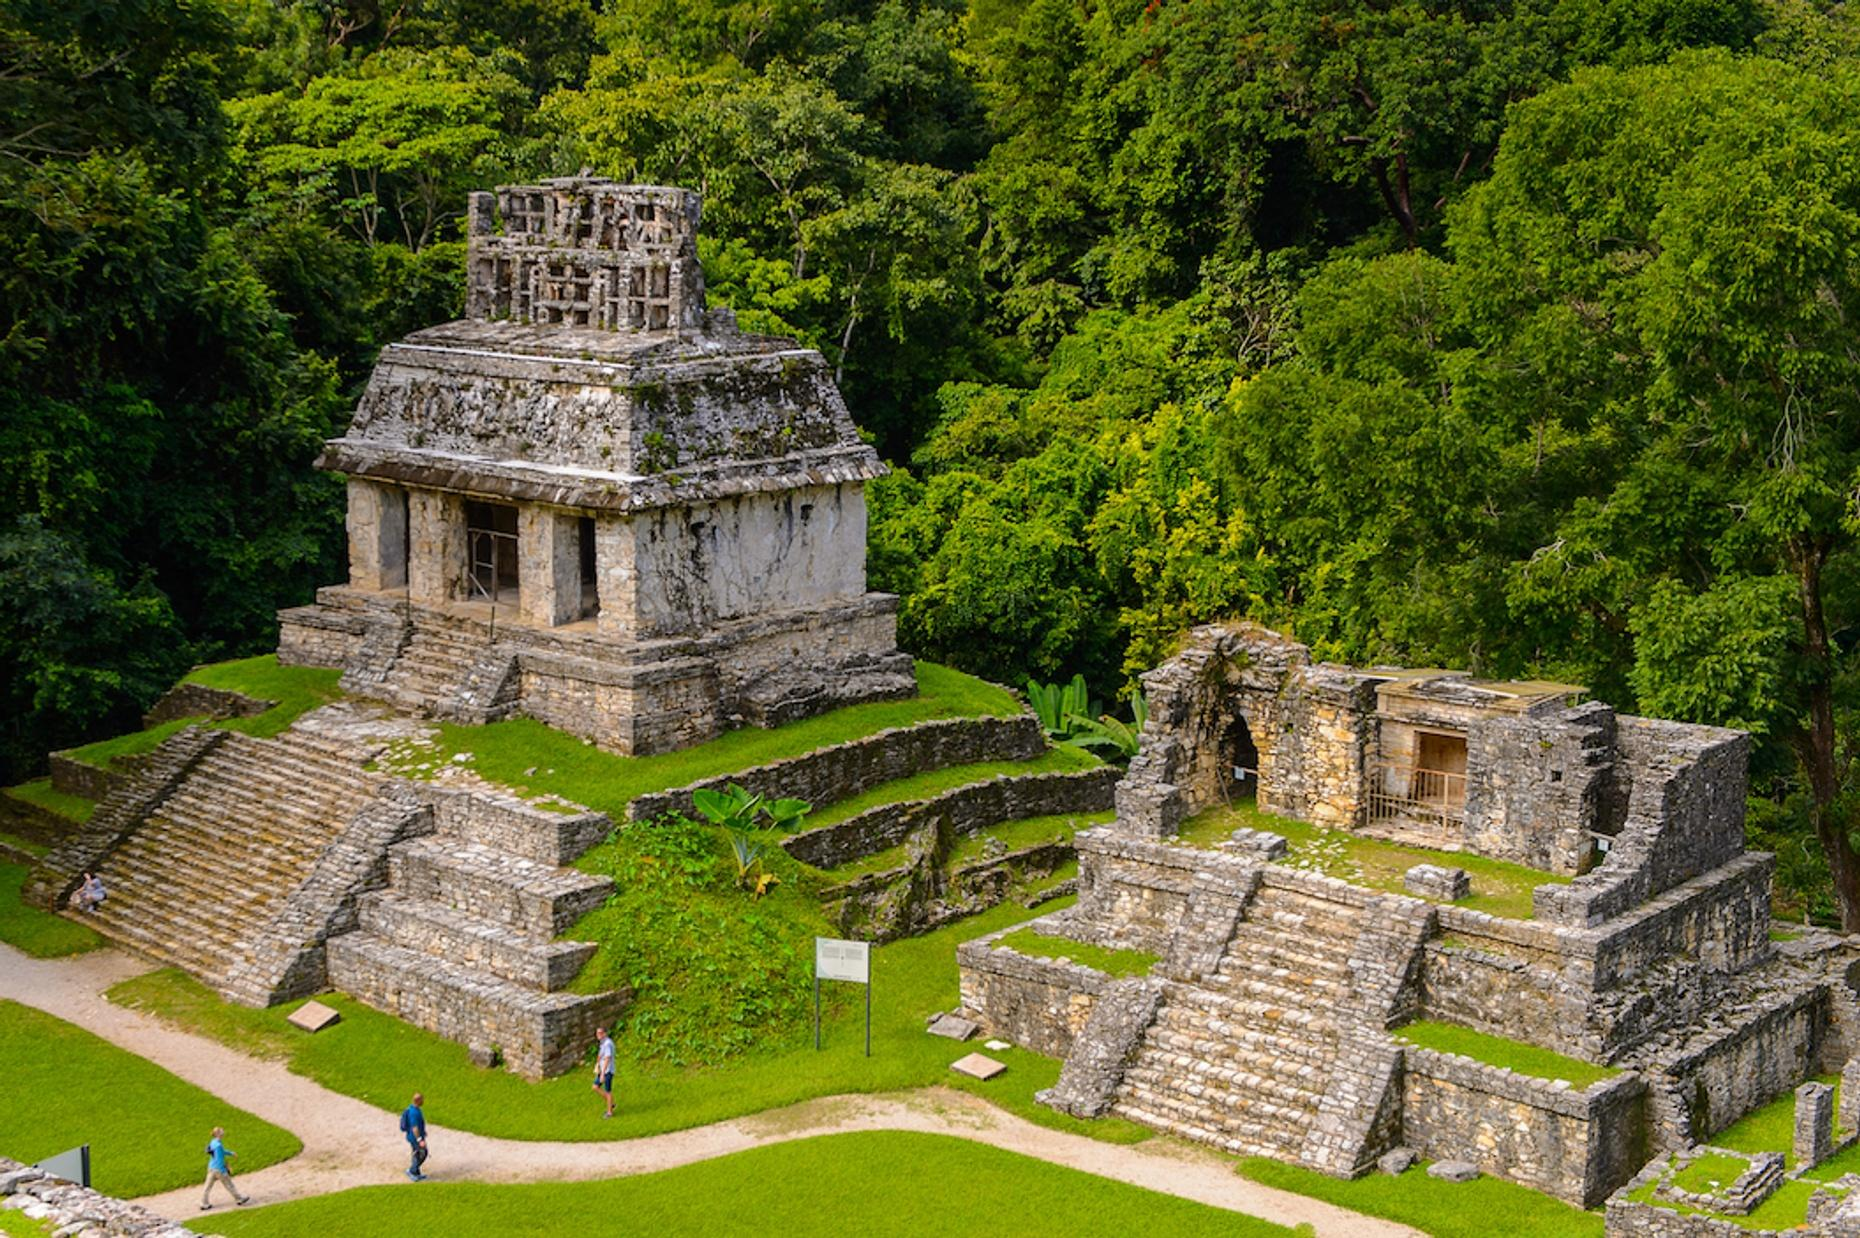 Guided Tour of Palenque from Cancun